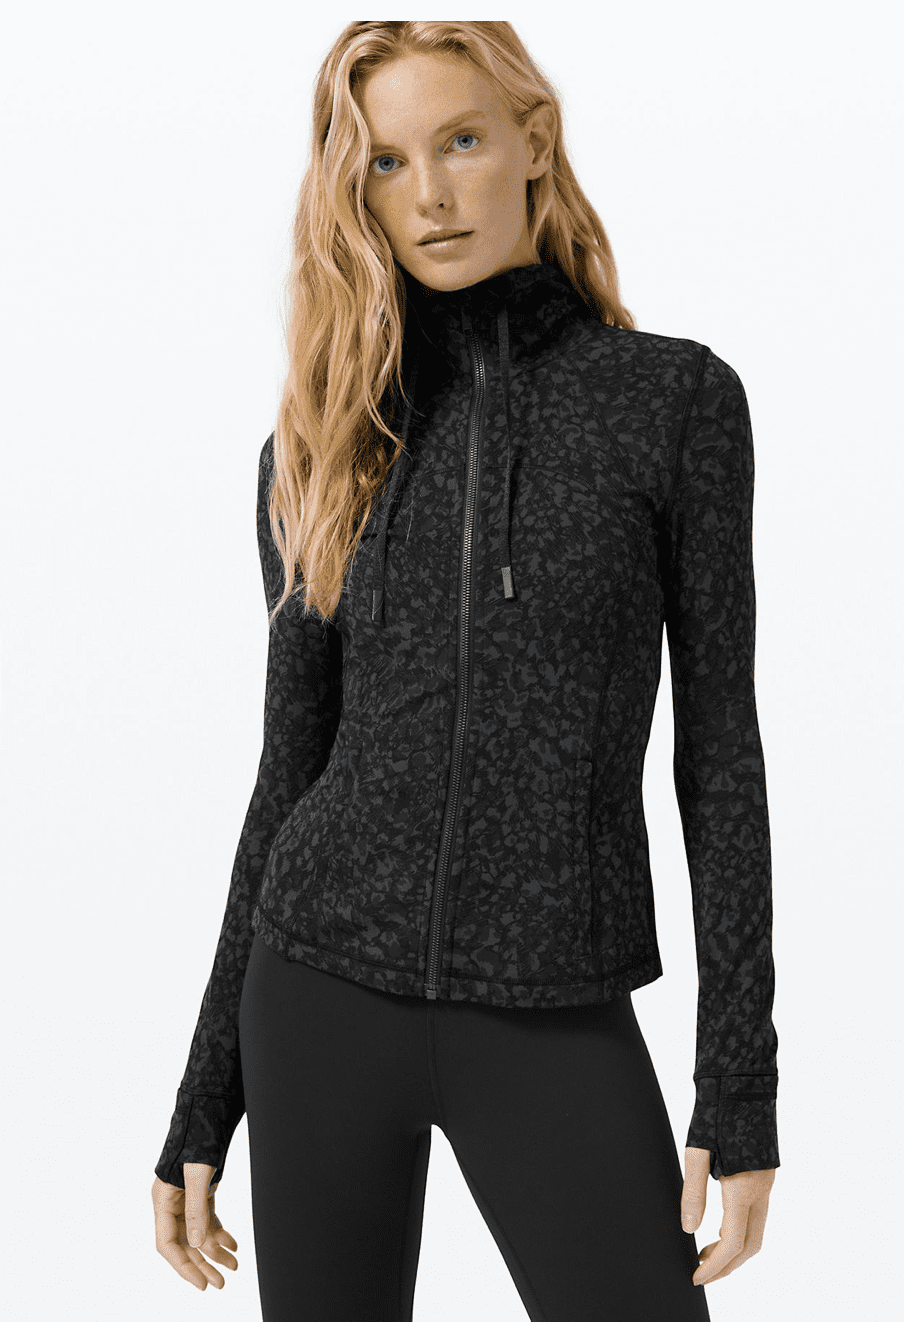 Lululemon: New Styles added to sale